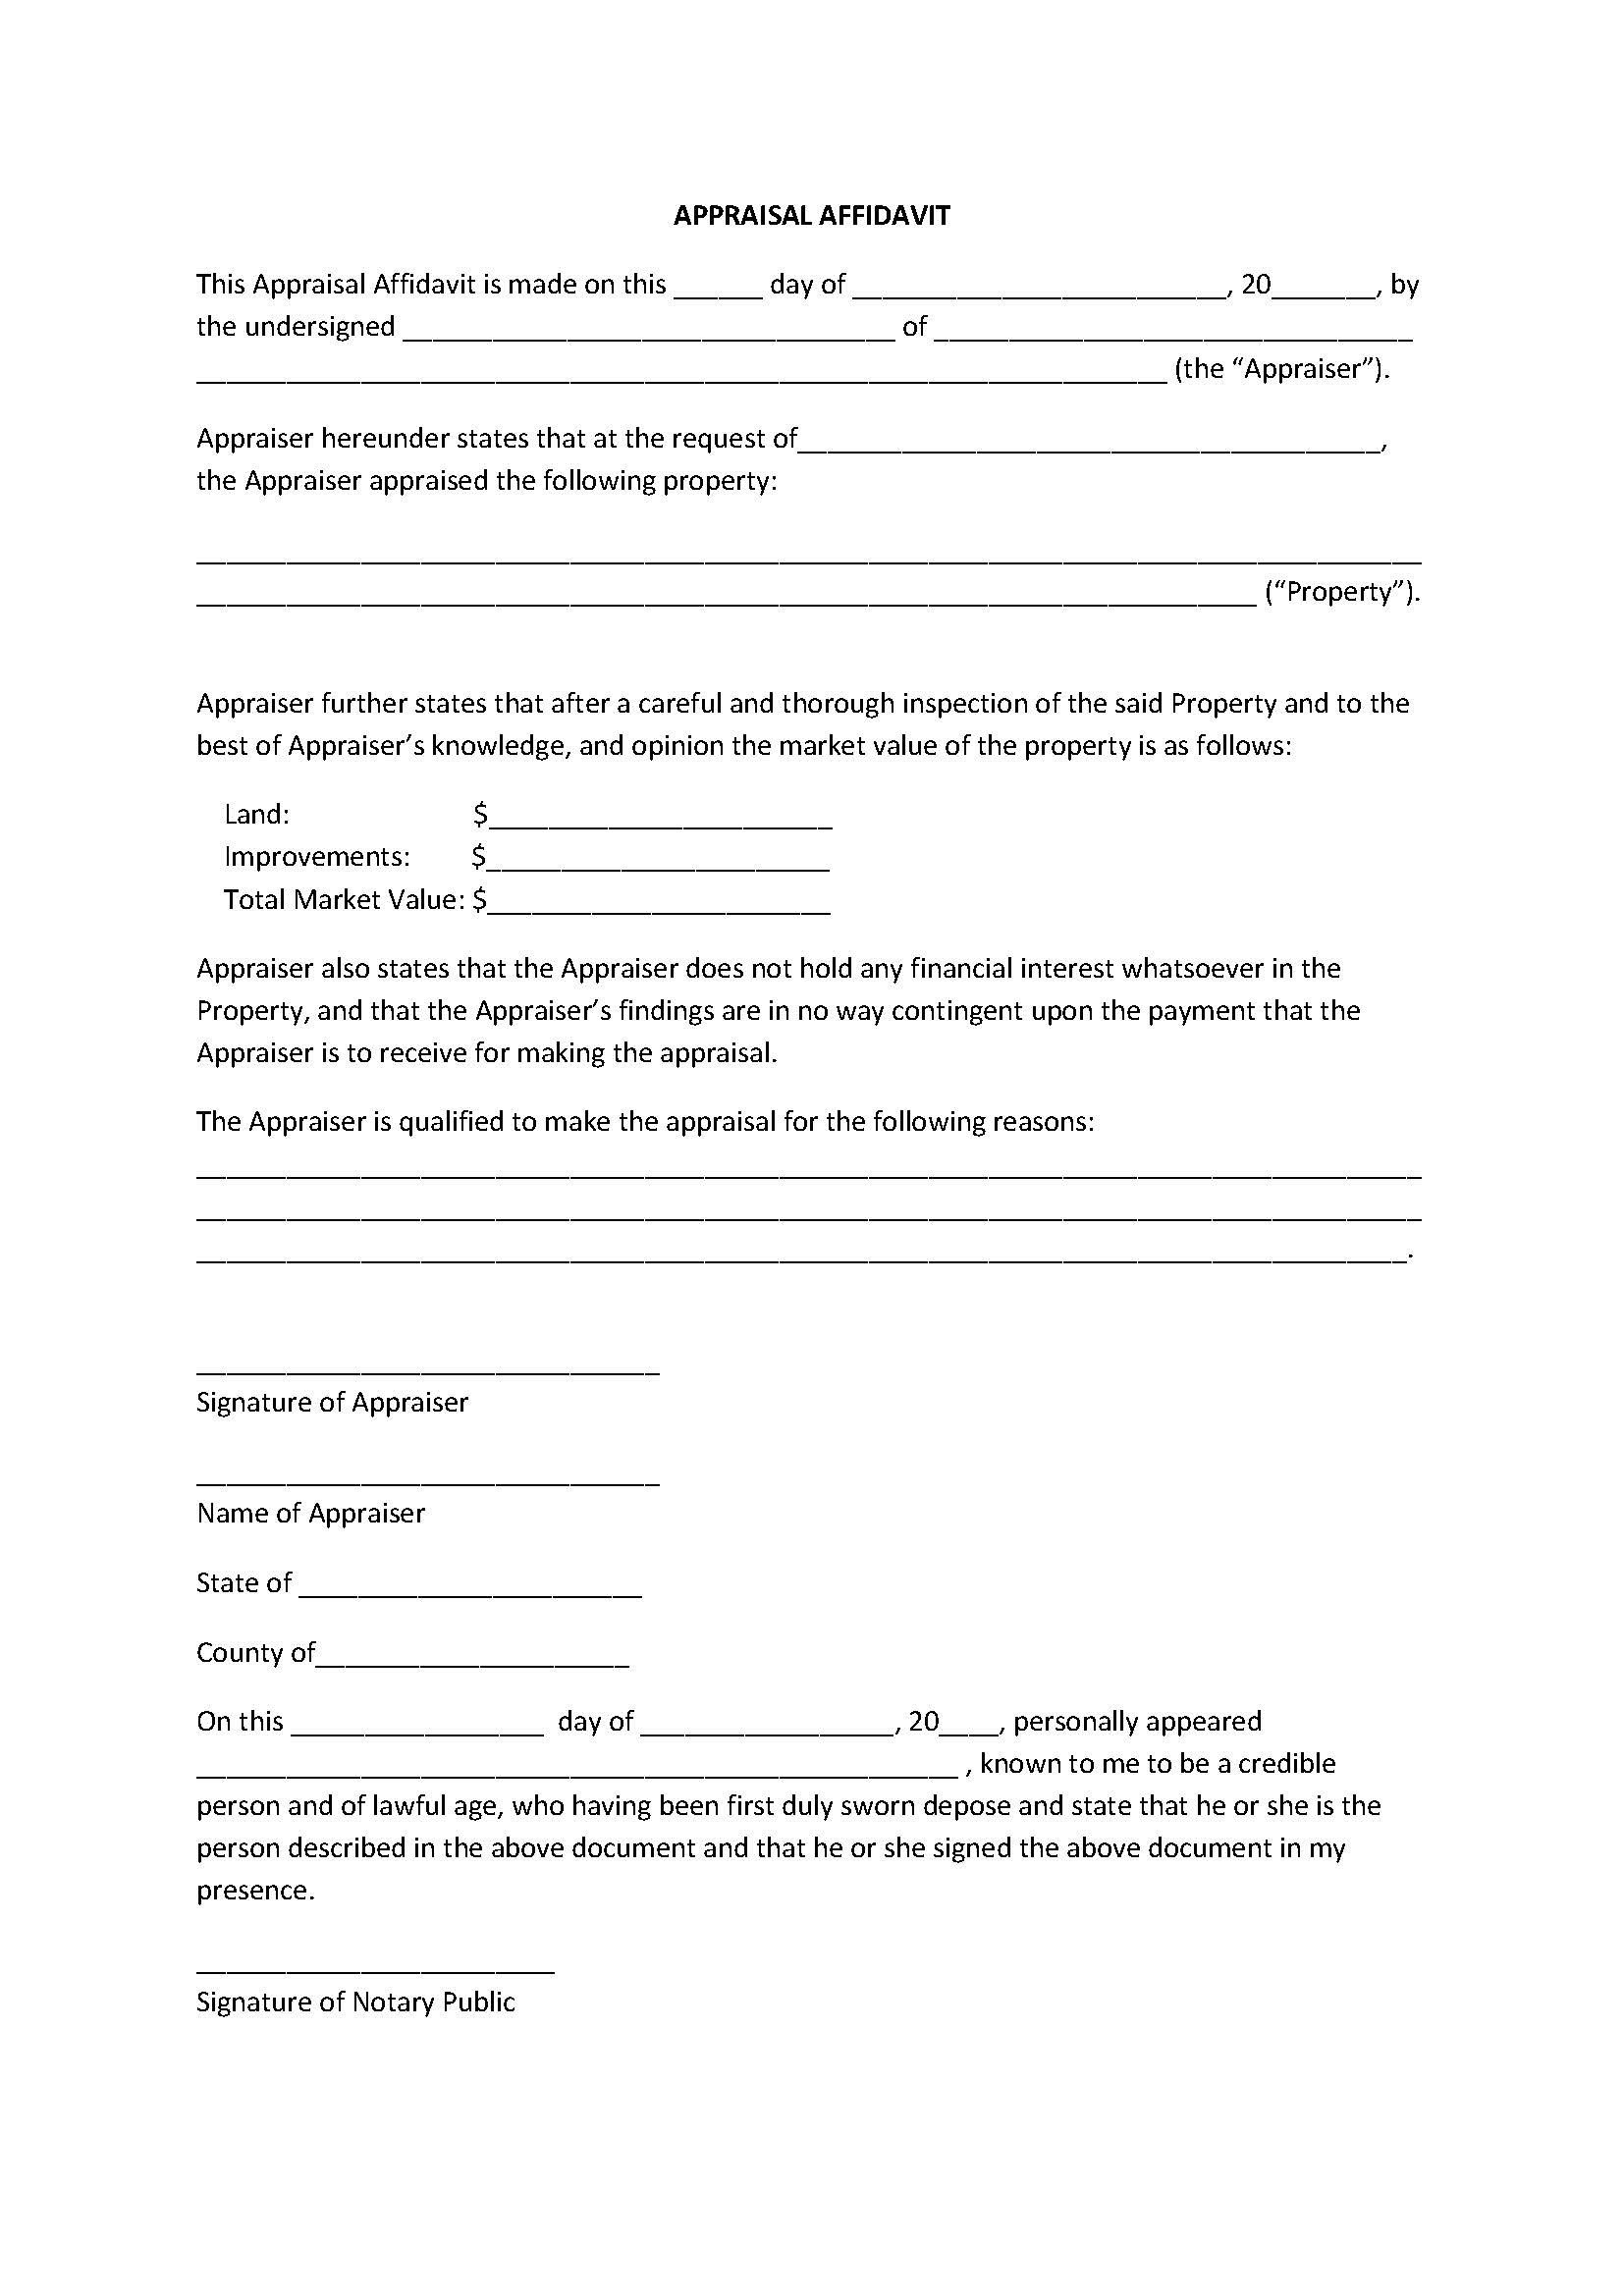 Notary Signature Block Template Appealing Appraisal Affidavit form Template Sample